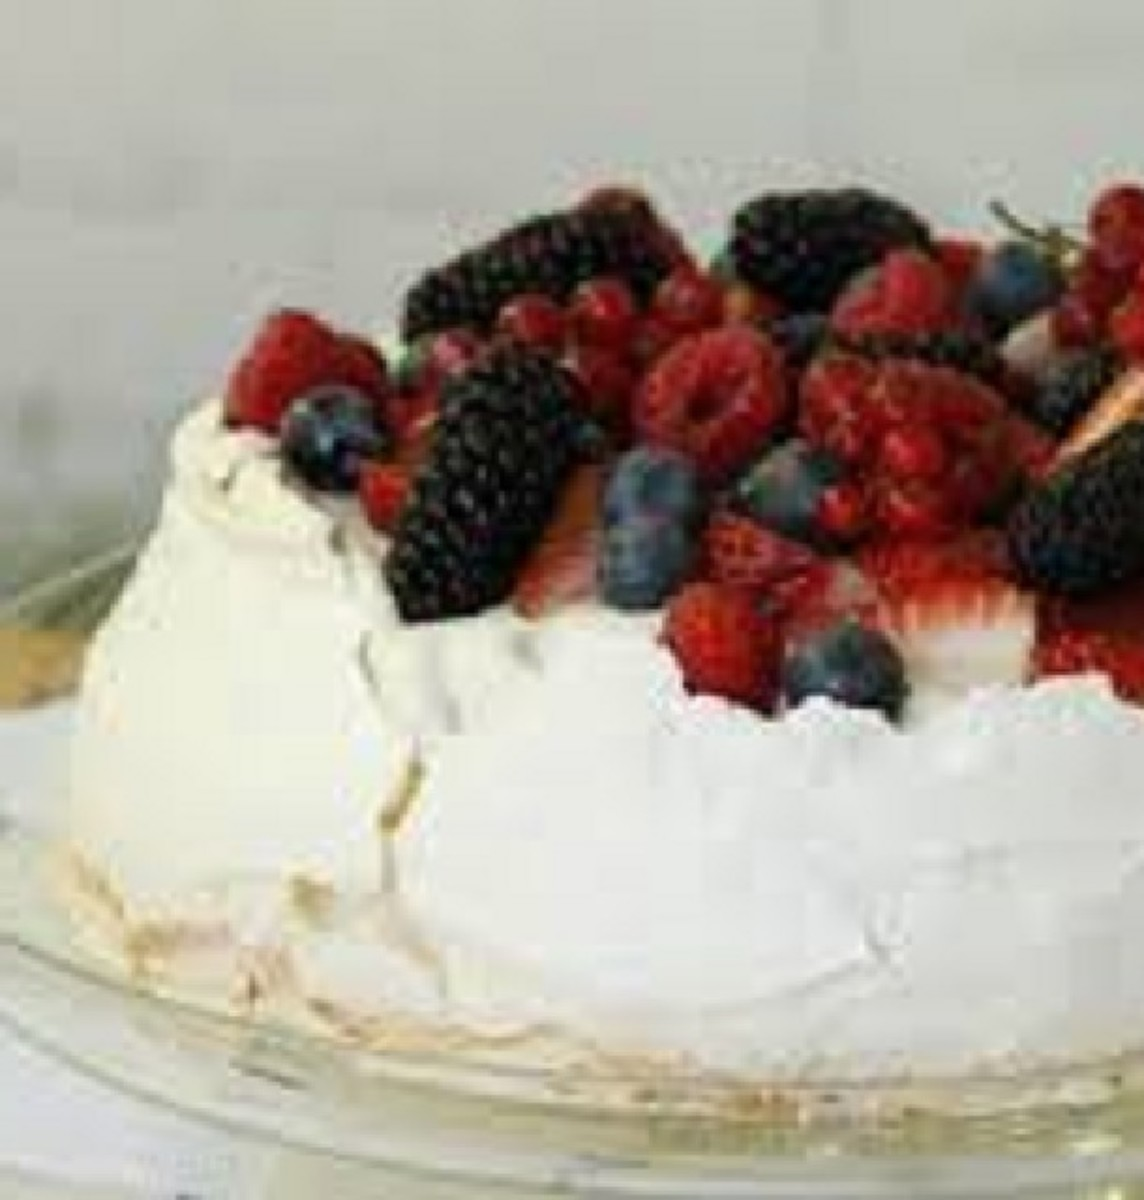 Wattelseed pavlova with fruit topping. This is a dish often enjoyed during Christmas Week.